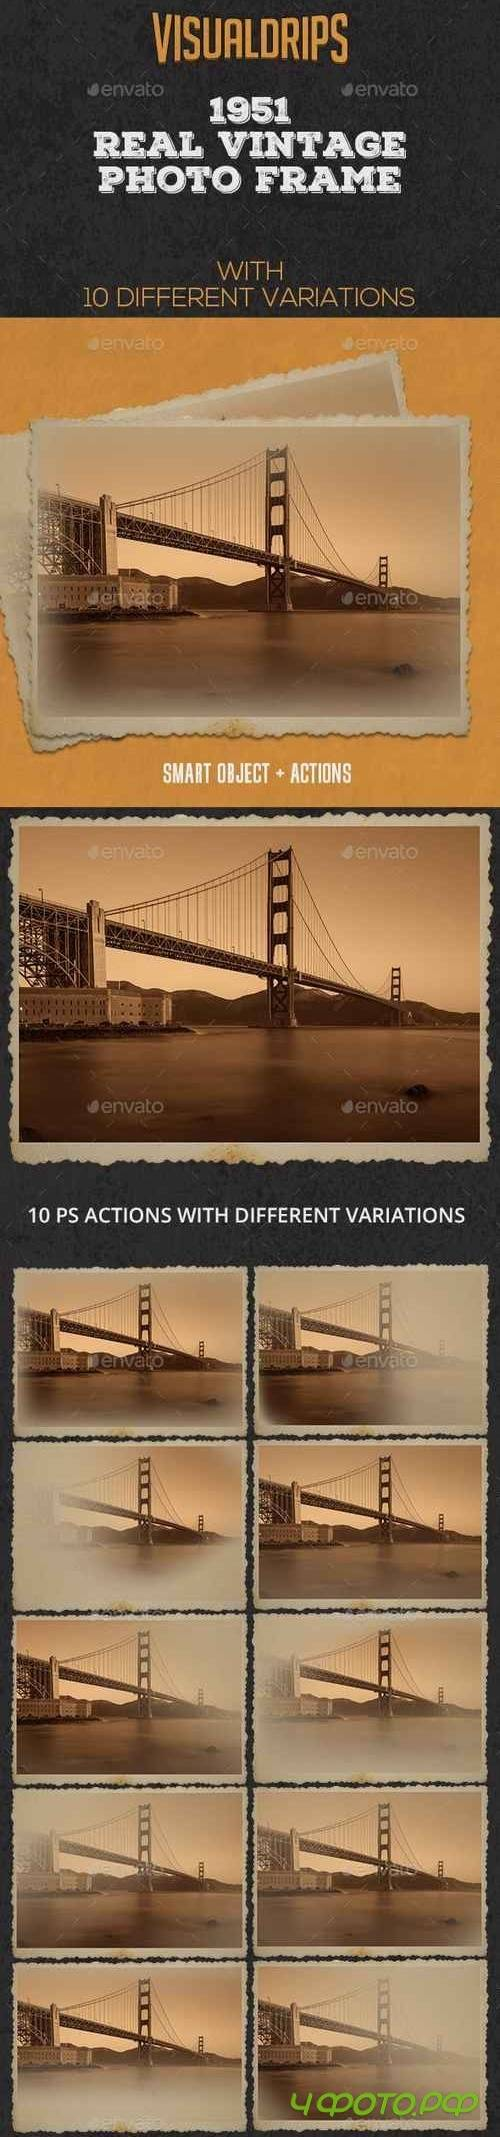 1951 Vintage Frame Photoshop Template 21954083